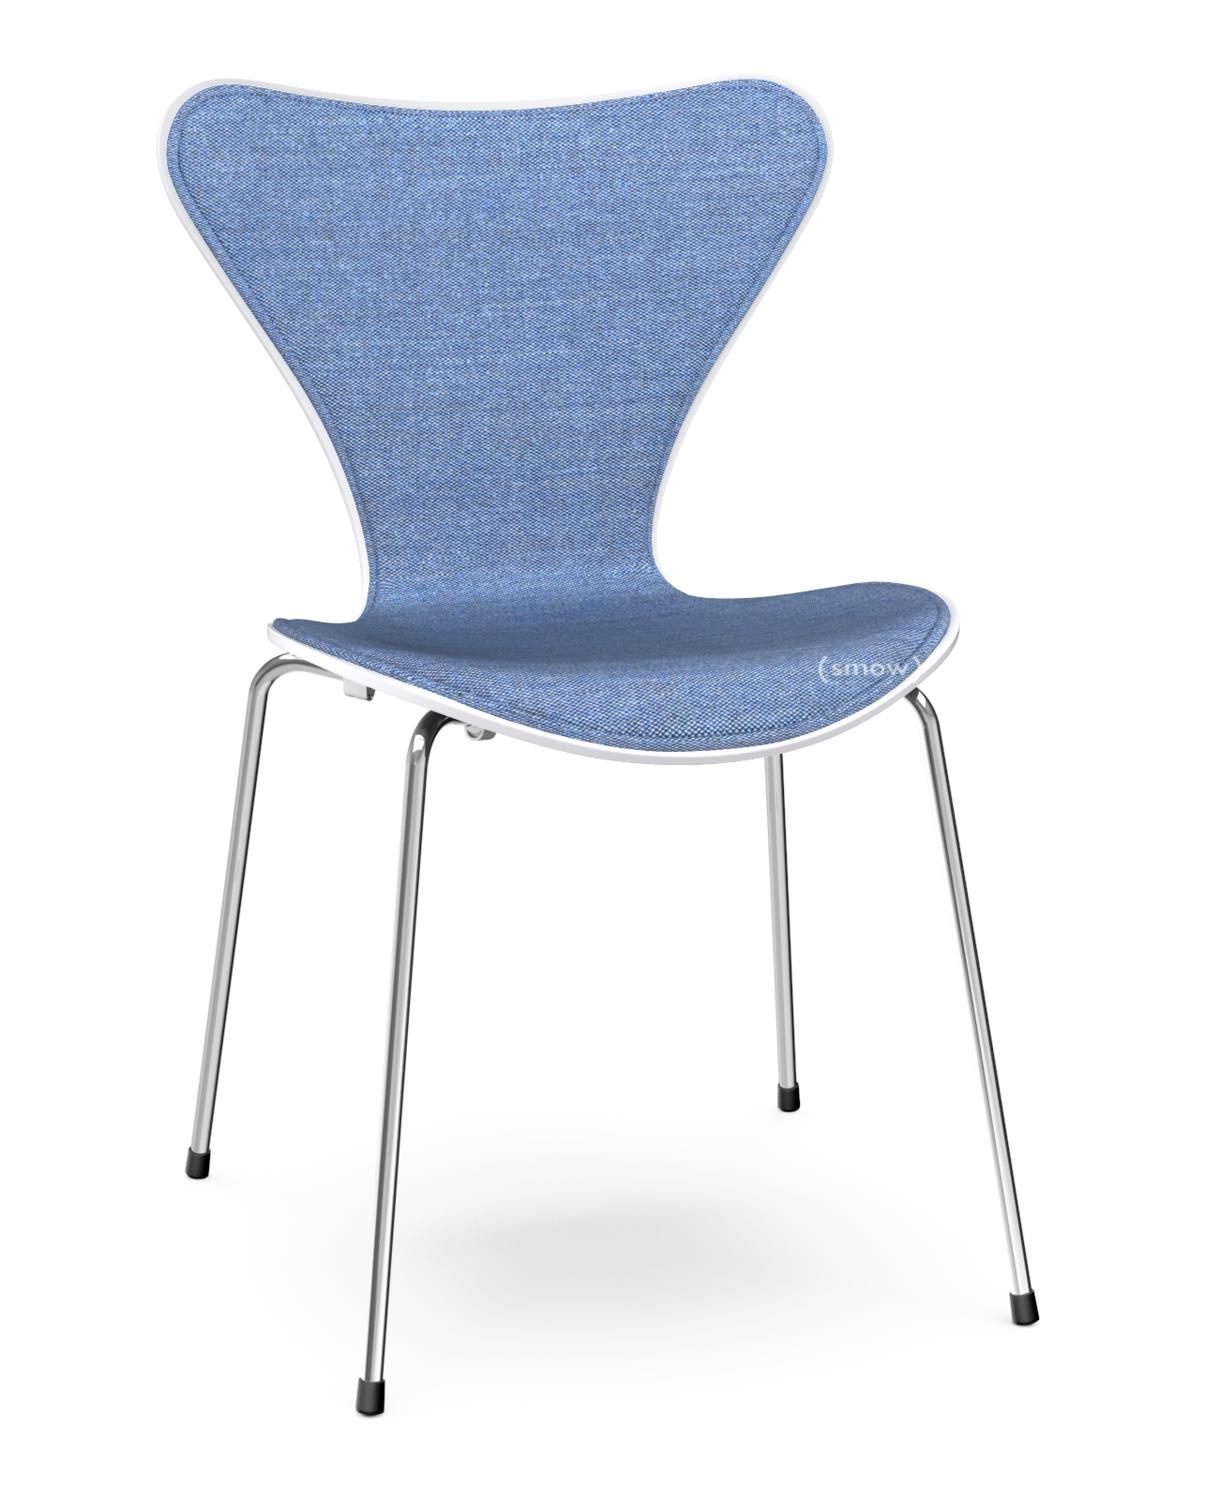 Series 7 Chair Front Upholstered Lacquer White Lacquered Fabric Remix Blue Chrome